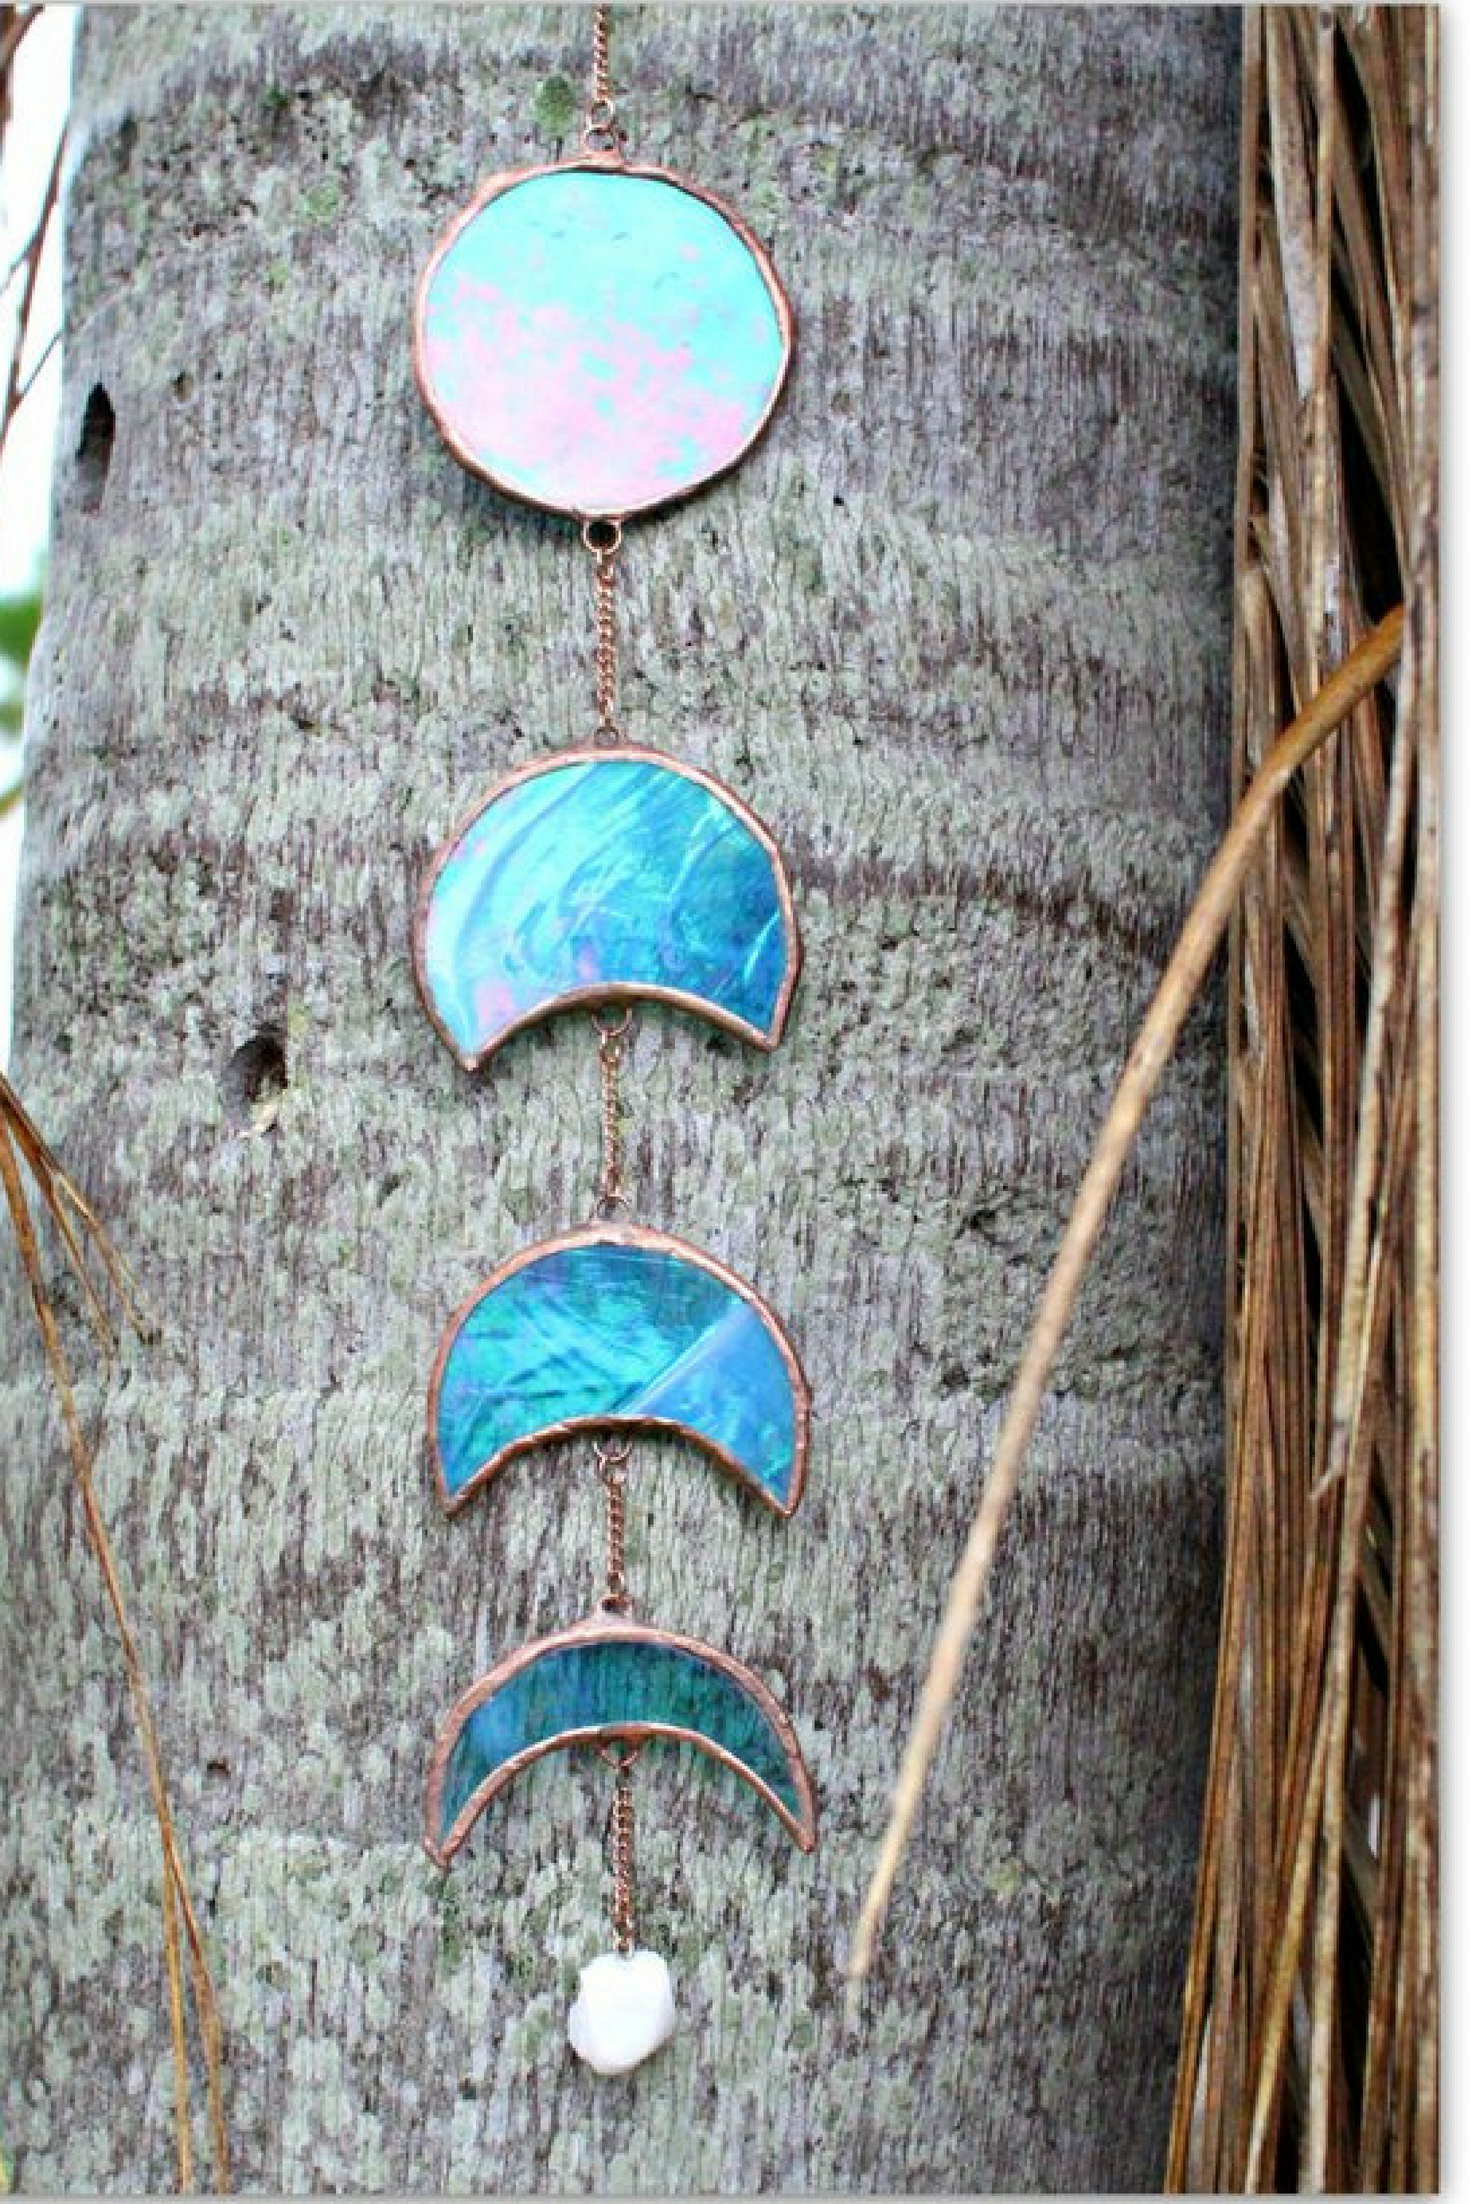 Iridized blue moon phase stained glass moon phase glass art